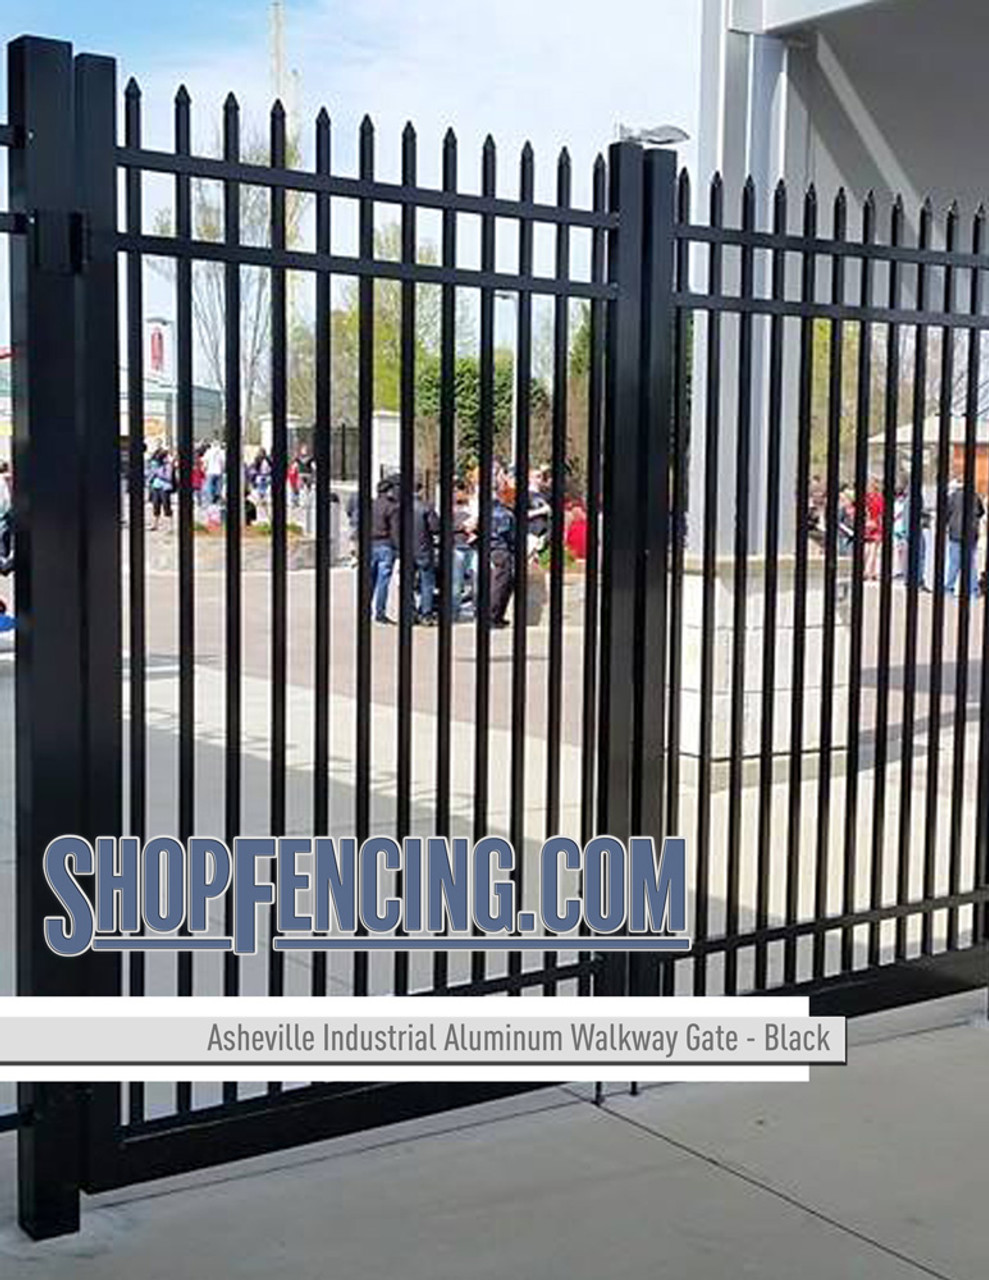 Black Industrial Asheville Aluminum Walkway Gates From ShopFencing.com